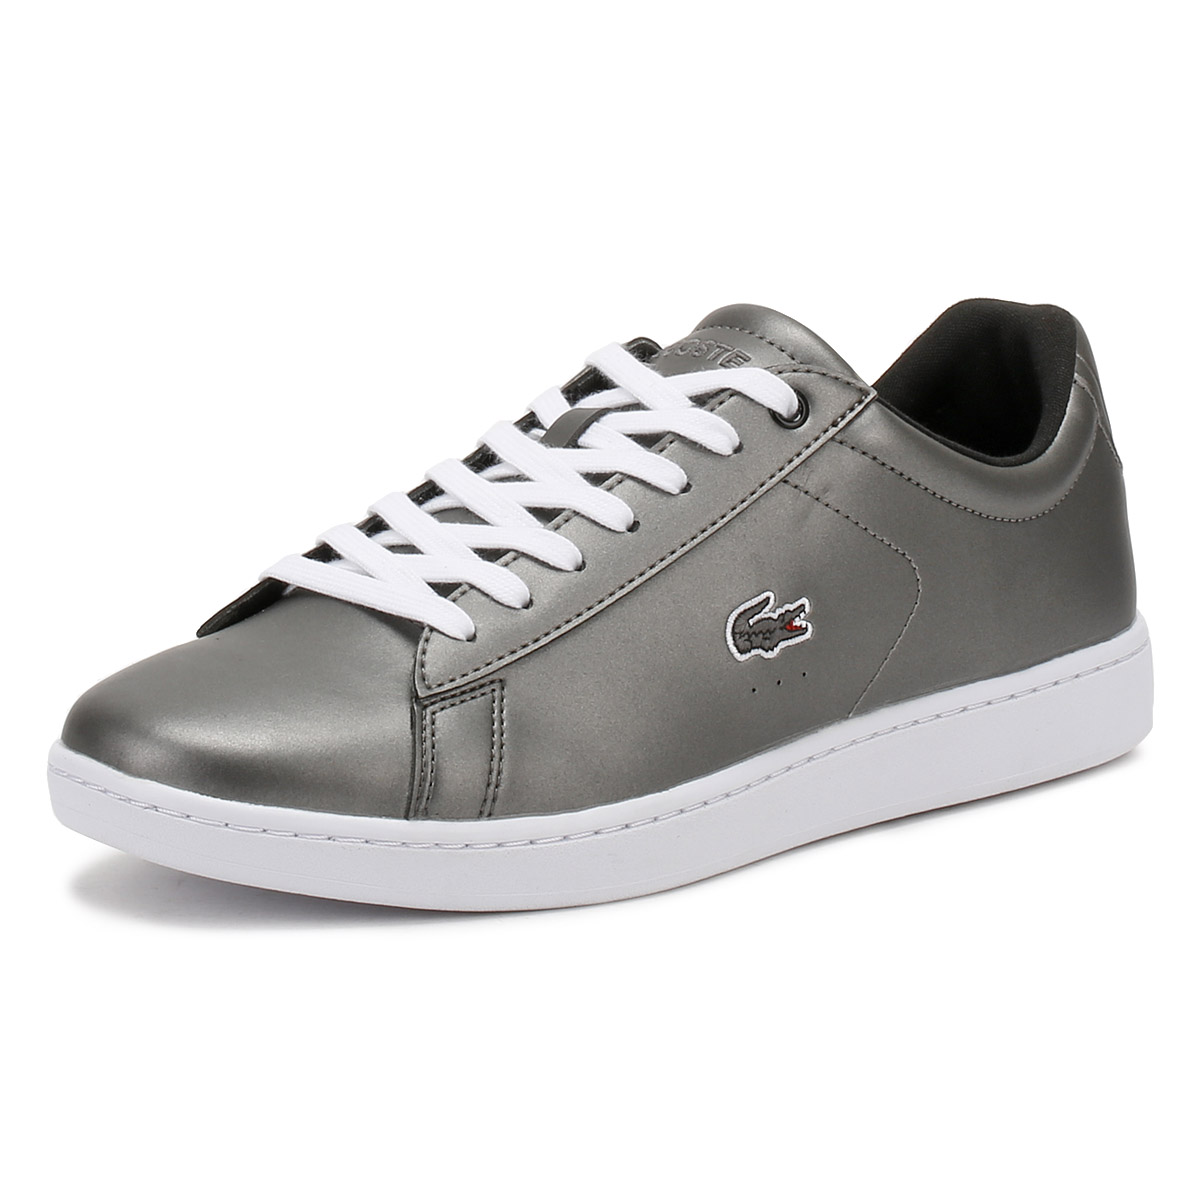 71538099a Details about Lacoste Womens Black Carnaby EVO 317 4 Trainers